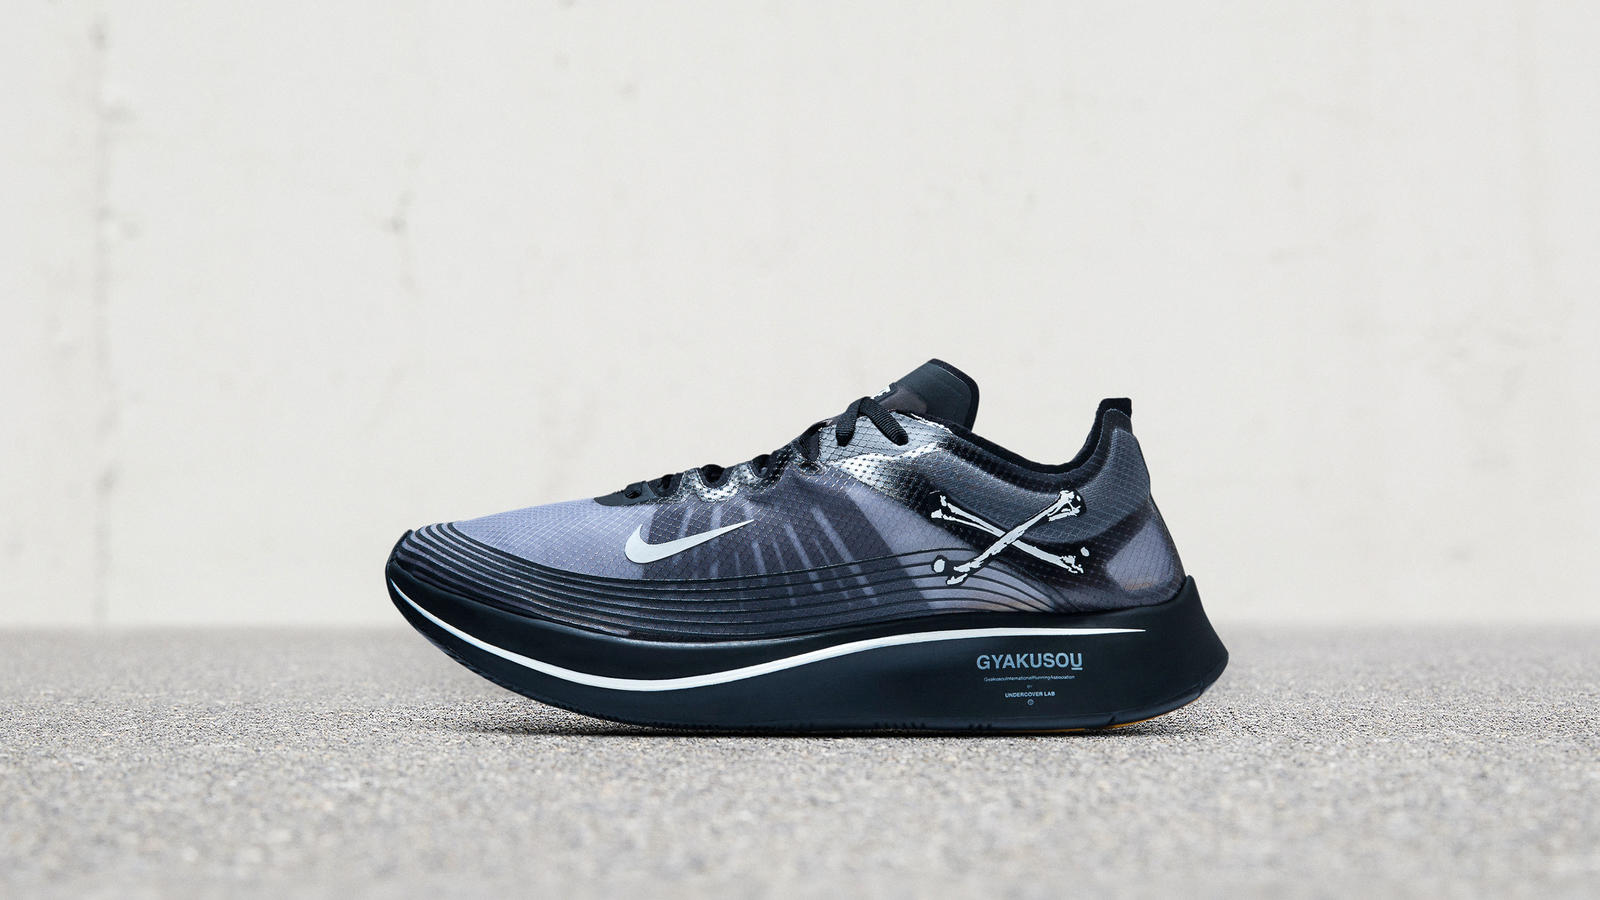 Featuredfootwear zoomfly gyakusou 275 re hd 1600